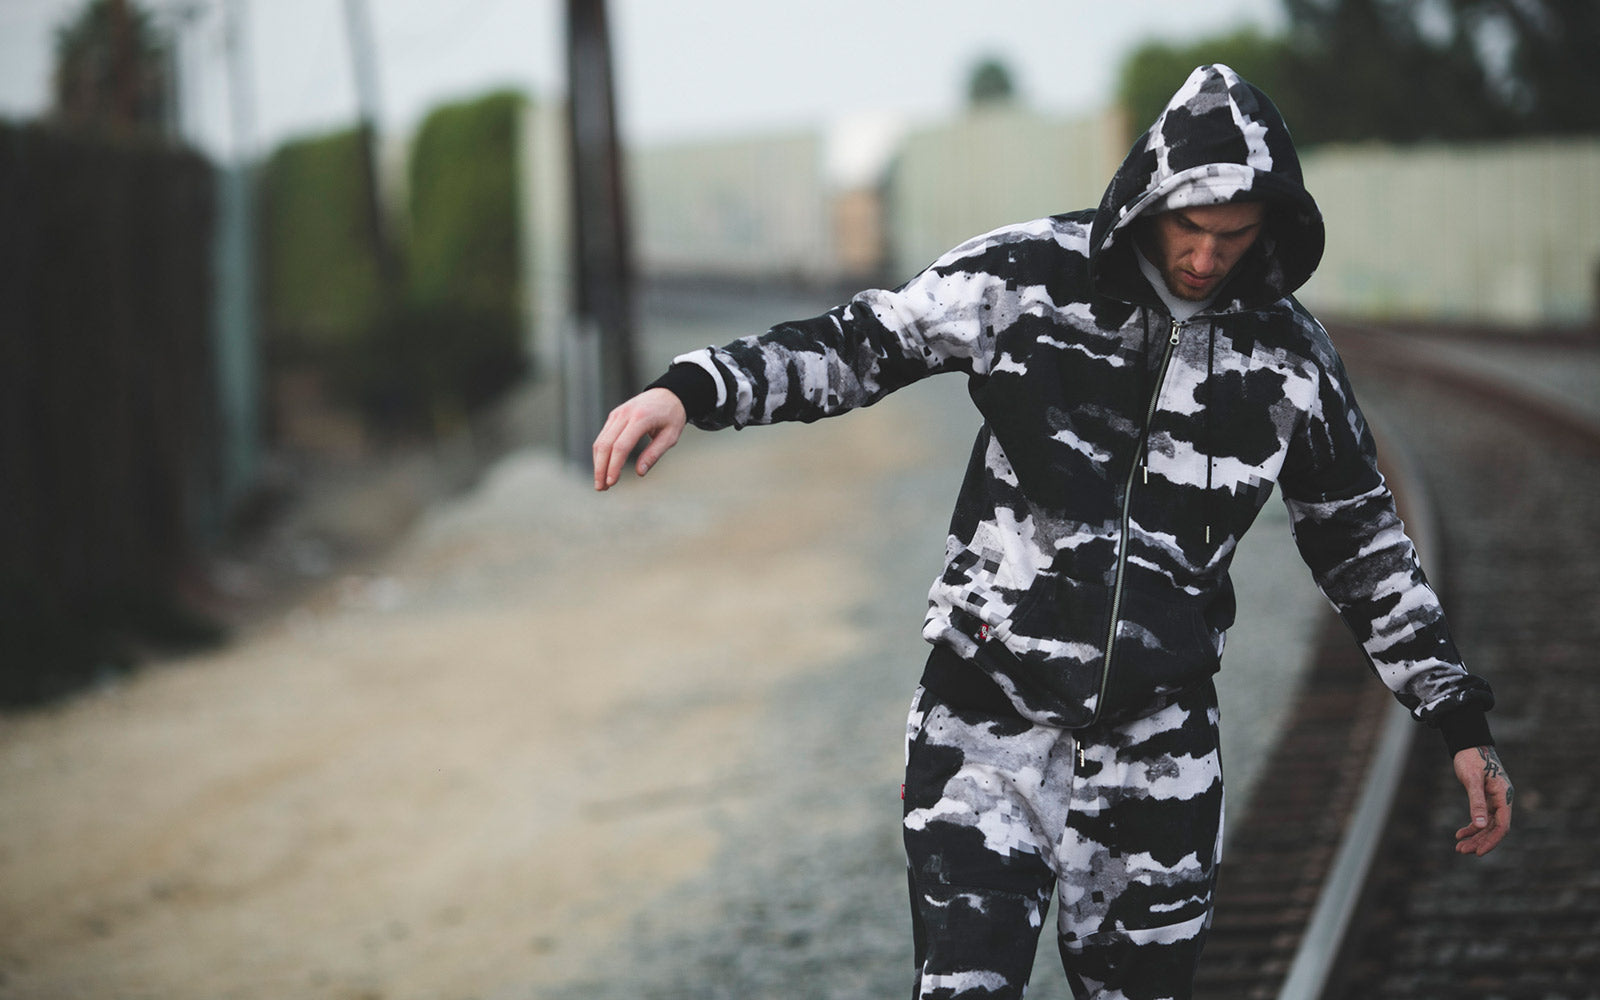 8&9 Mfg Clothing streetwear brand from miami and their hood scouts collection on TheDrop